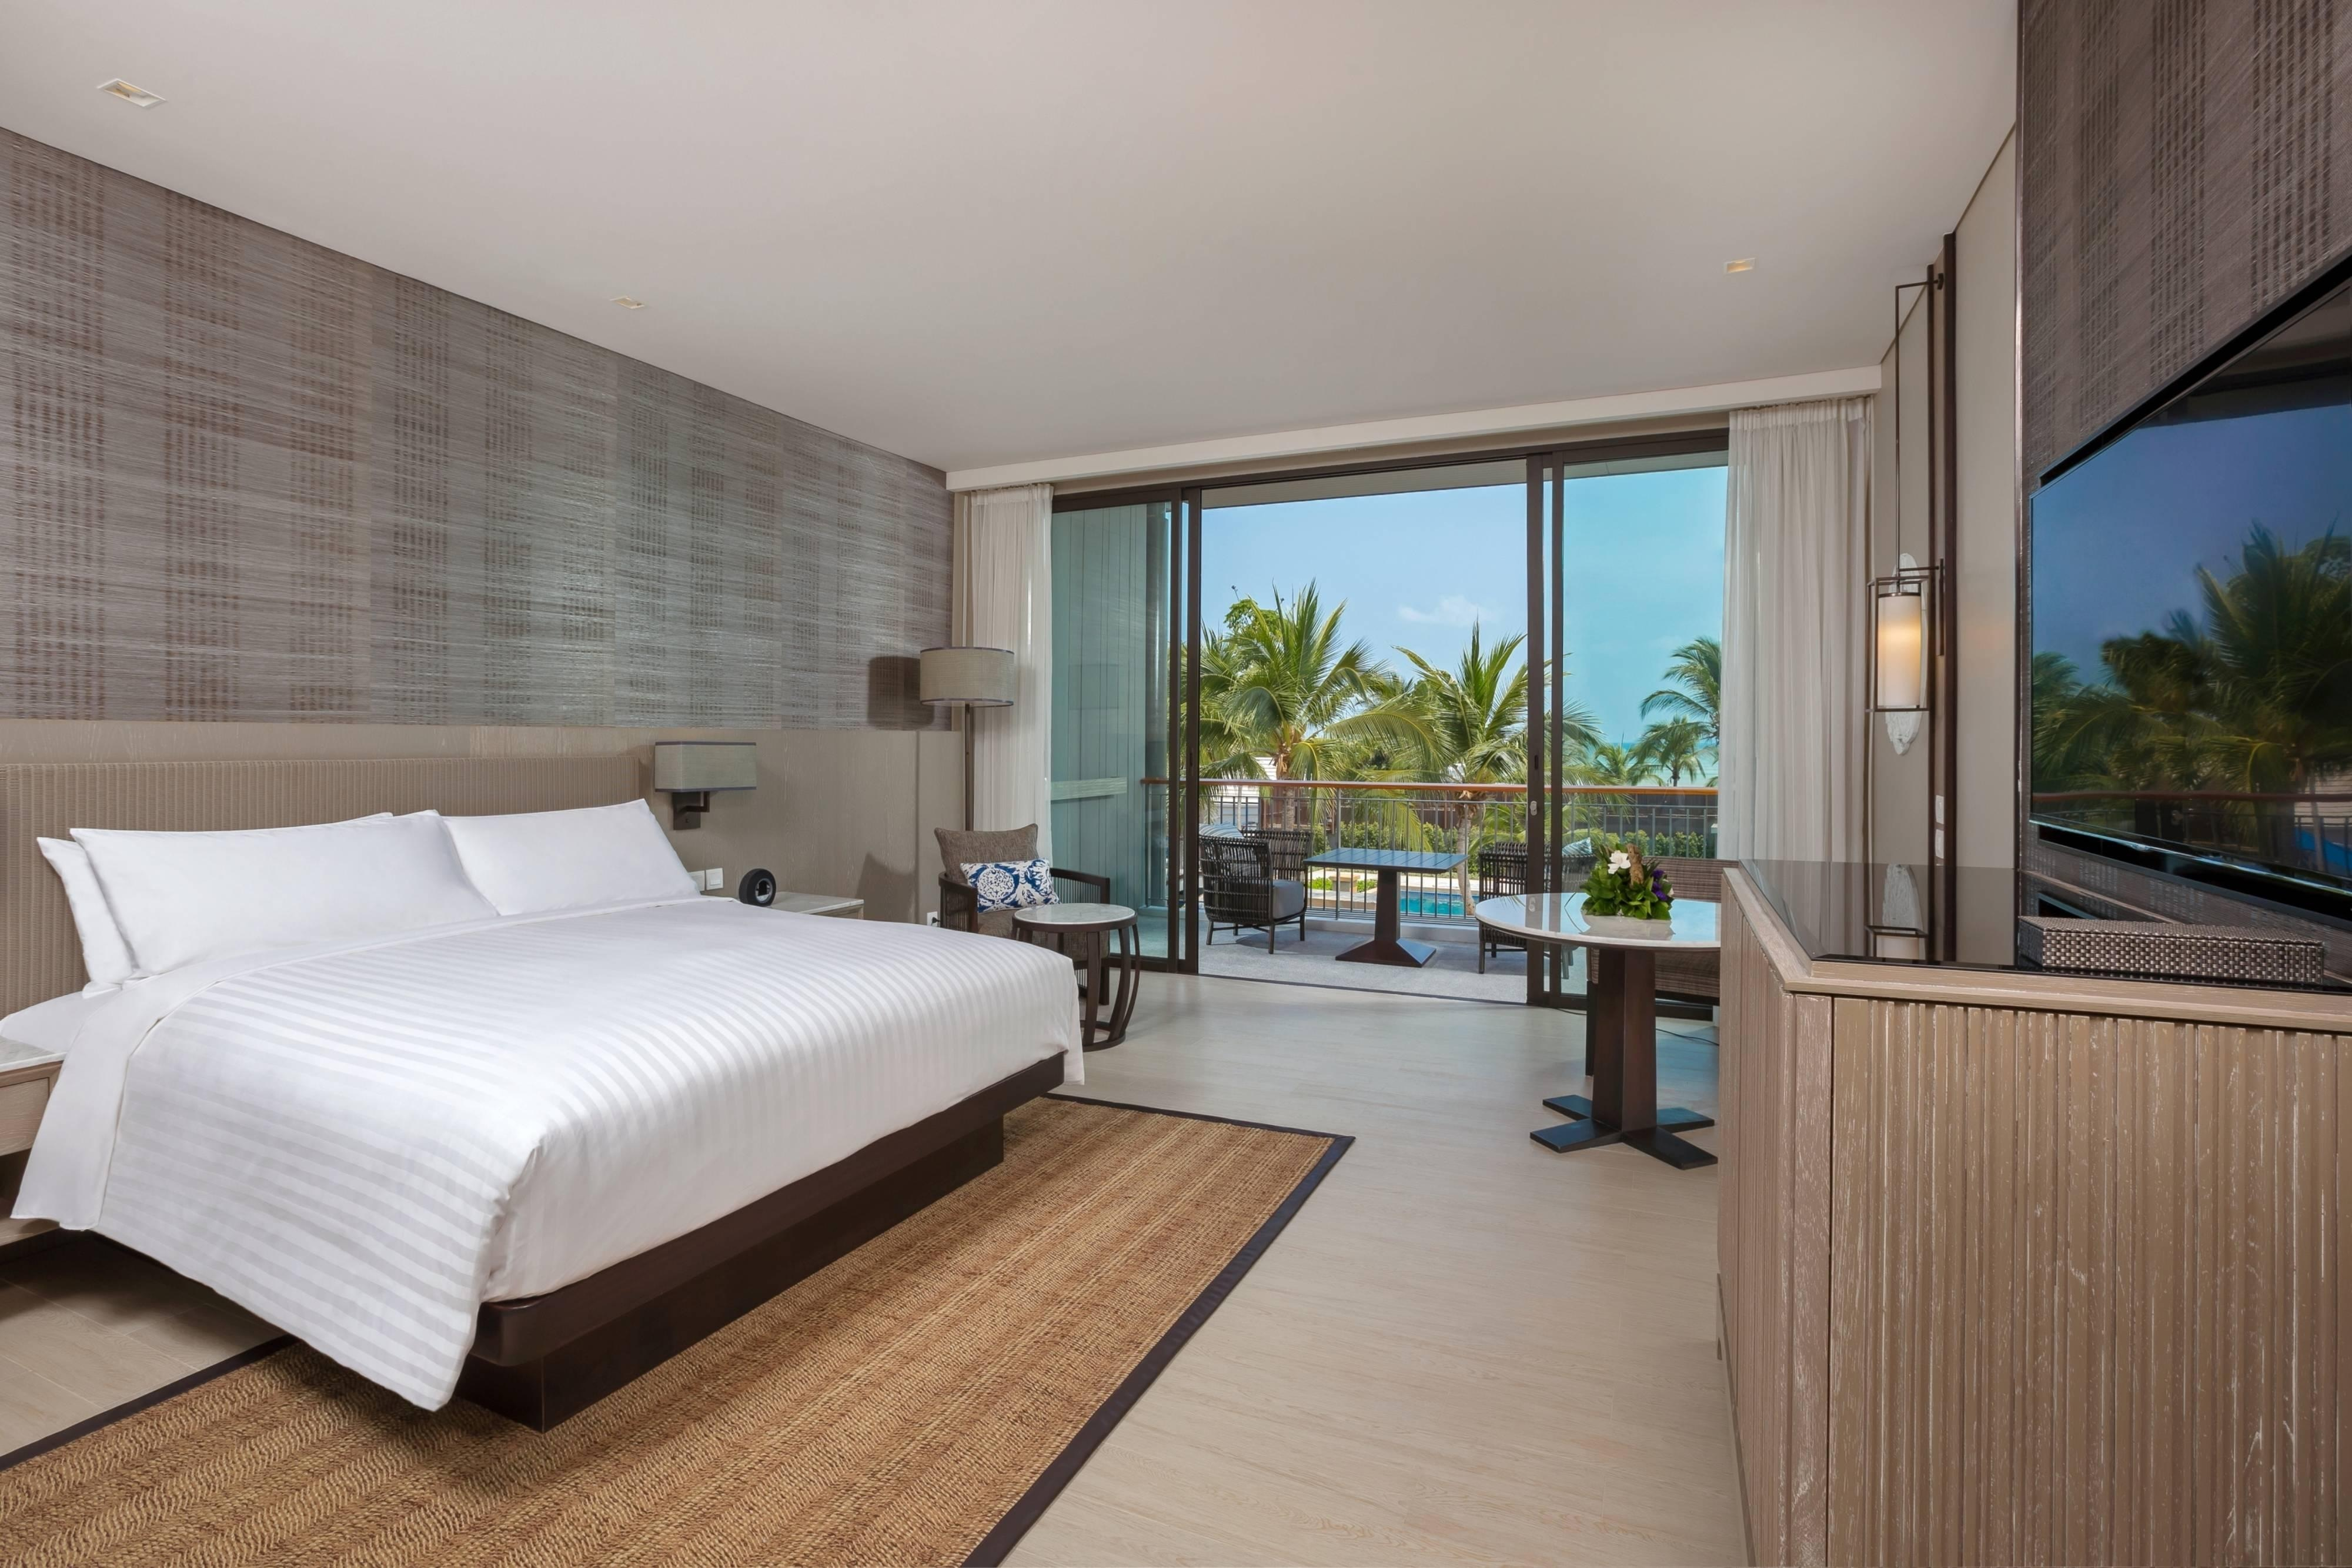 Phuket marriott resort spa naiyang beach hotel en phuket for Hotel habitacion familiar noja